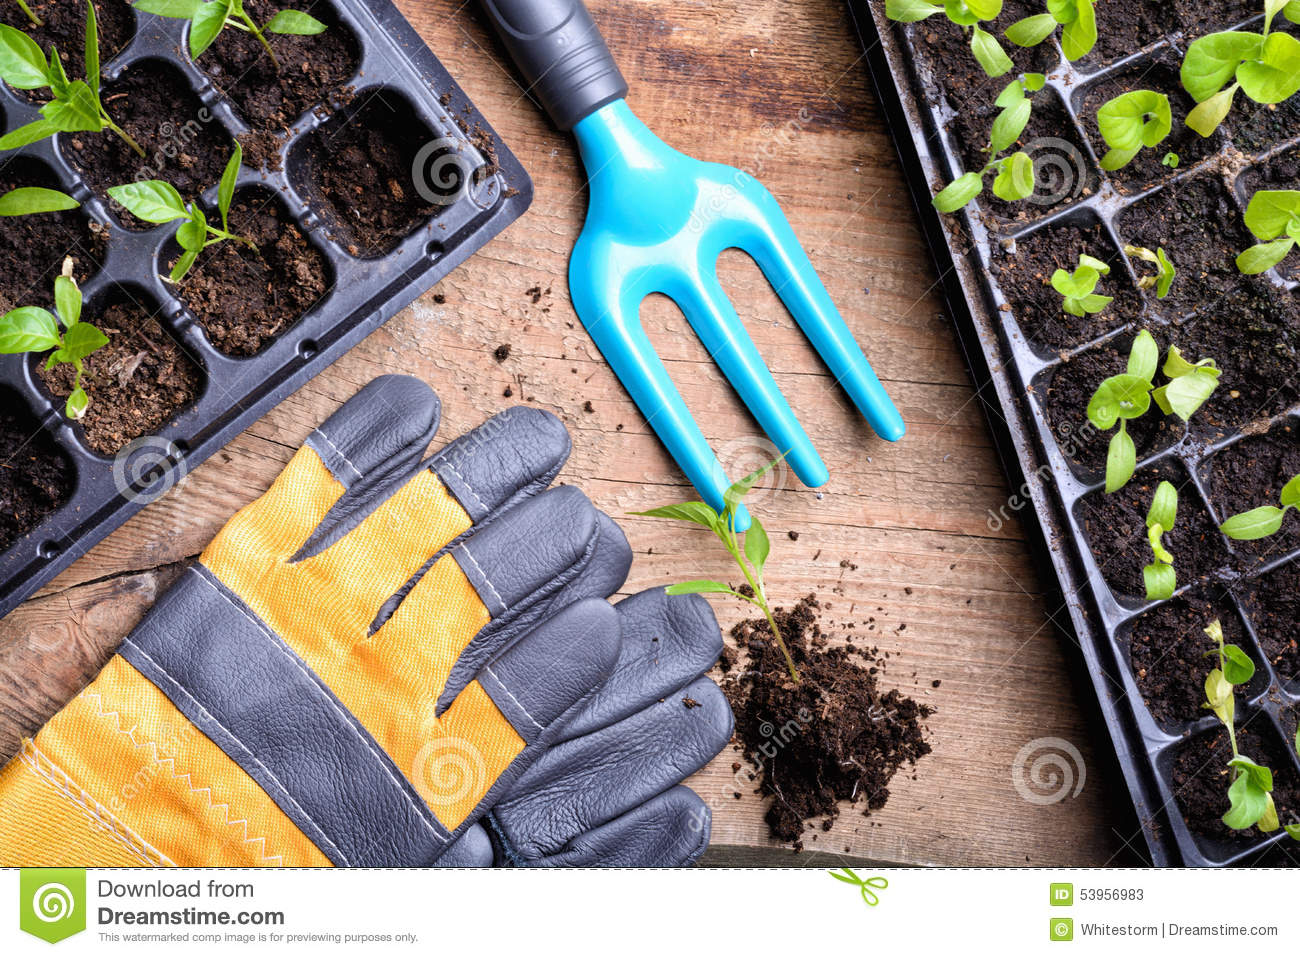 Garden tools stock photo 56980740 for Gardening tools cartoon